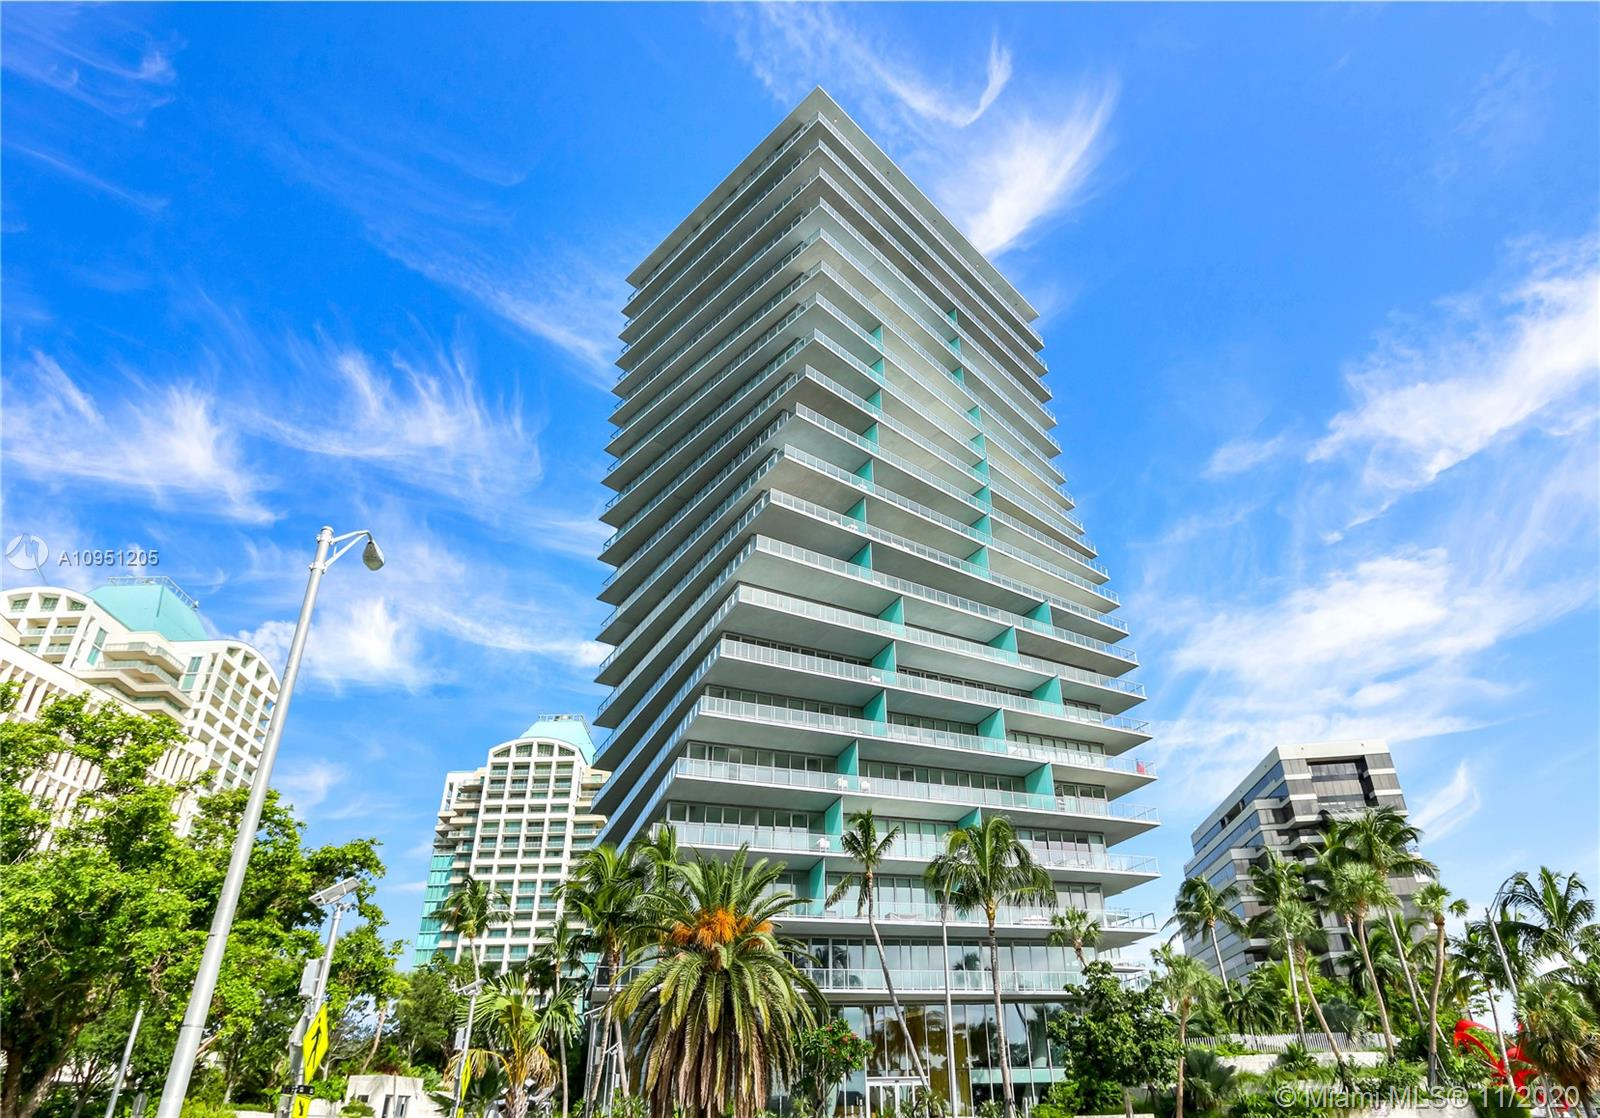 Unique opportunity to buy a truly spectacular unit in the newly finished north tower of THE GROVE AT GRAND BAY, Miami's hottest waterfront luxury condominium. Designed by interior designer STEVEN G, this fully finished unit has an open floor plan with ample natural light in every room and gorgeous panoramic views of the city and biscayne bay. Amenities include 24-hour concierge and butler service, lap and roof-top pools, a modern spa, a state-of-the-art fitness center with spinning room, game room, pet spa, library, a private restaurant and valet parking services.